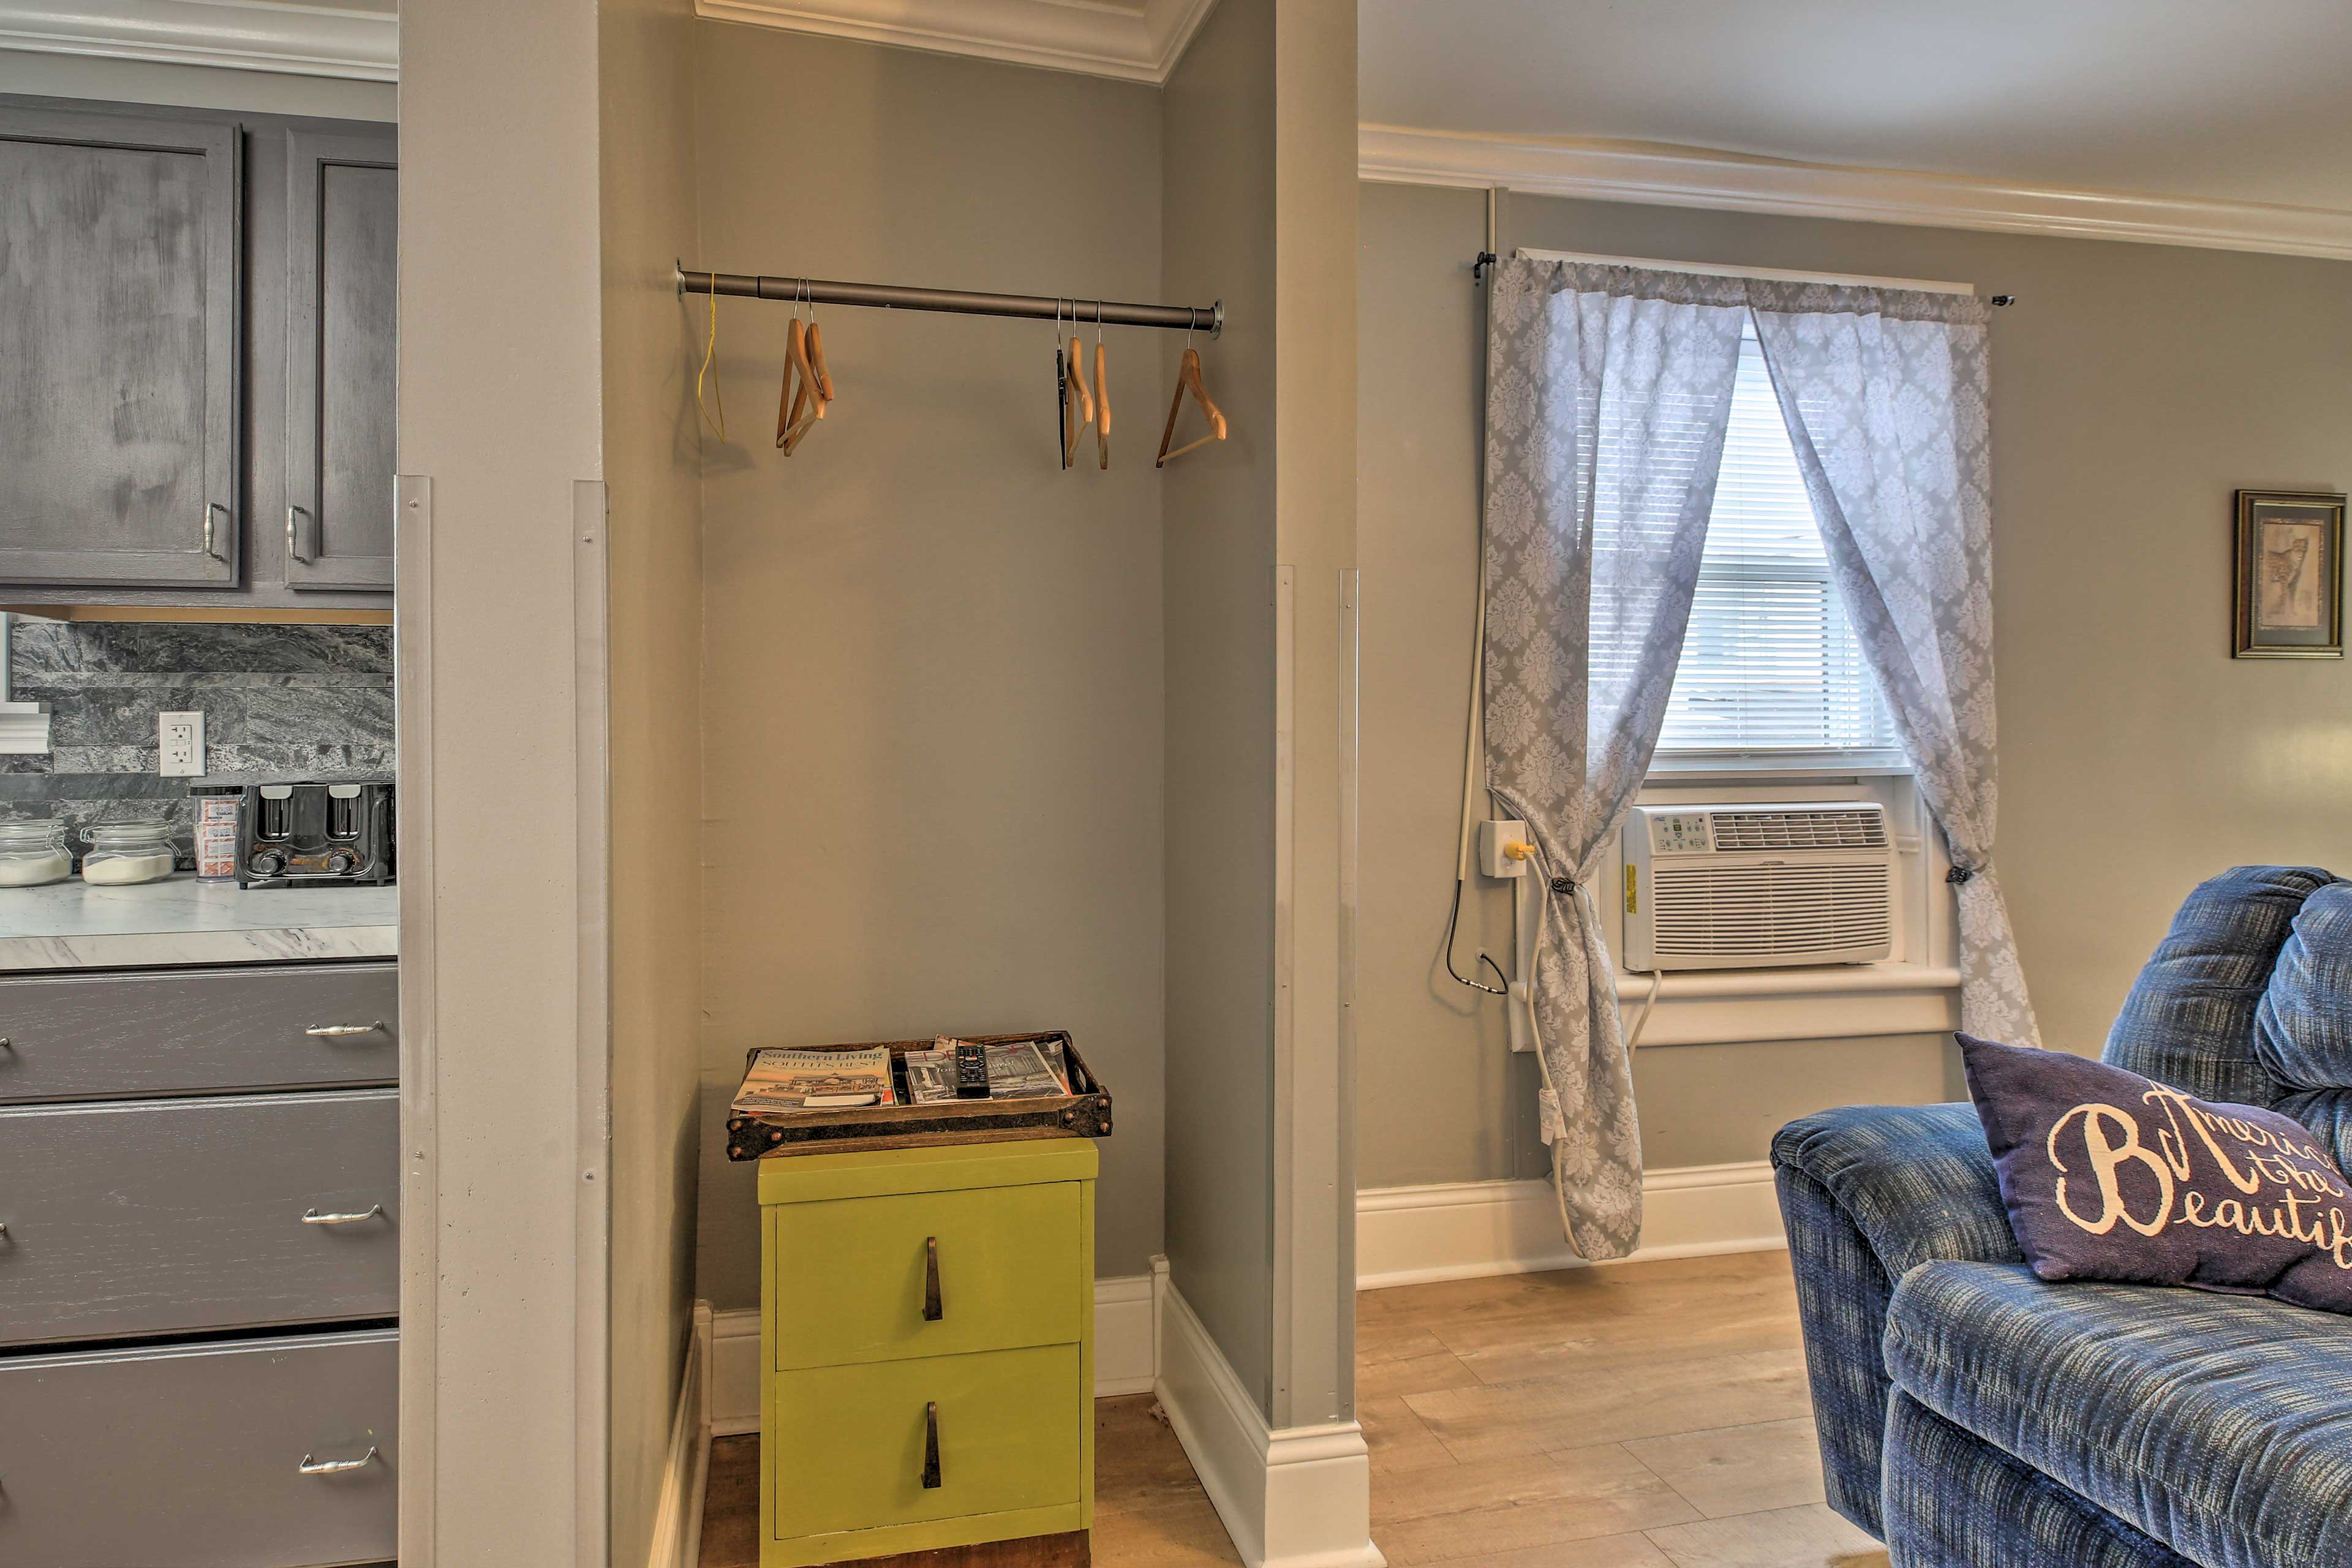 Store your belongings in the spacious closet during your visit.